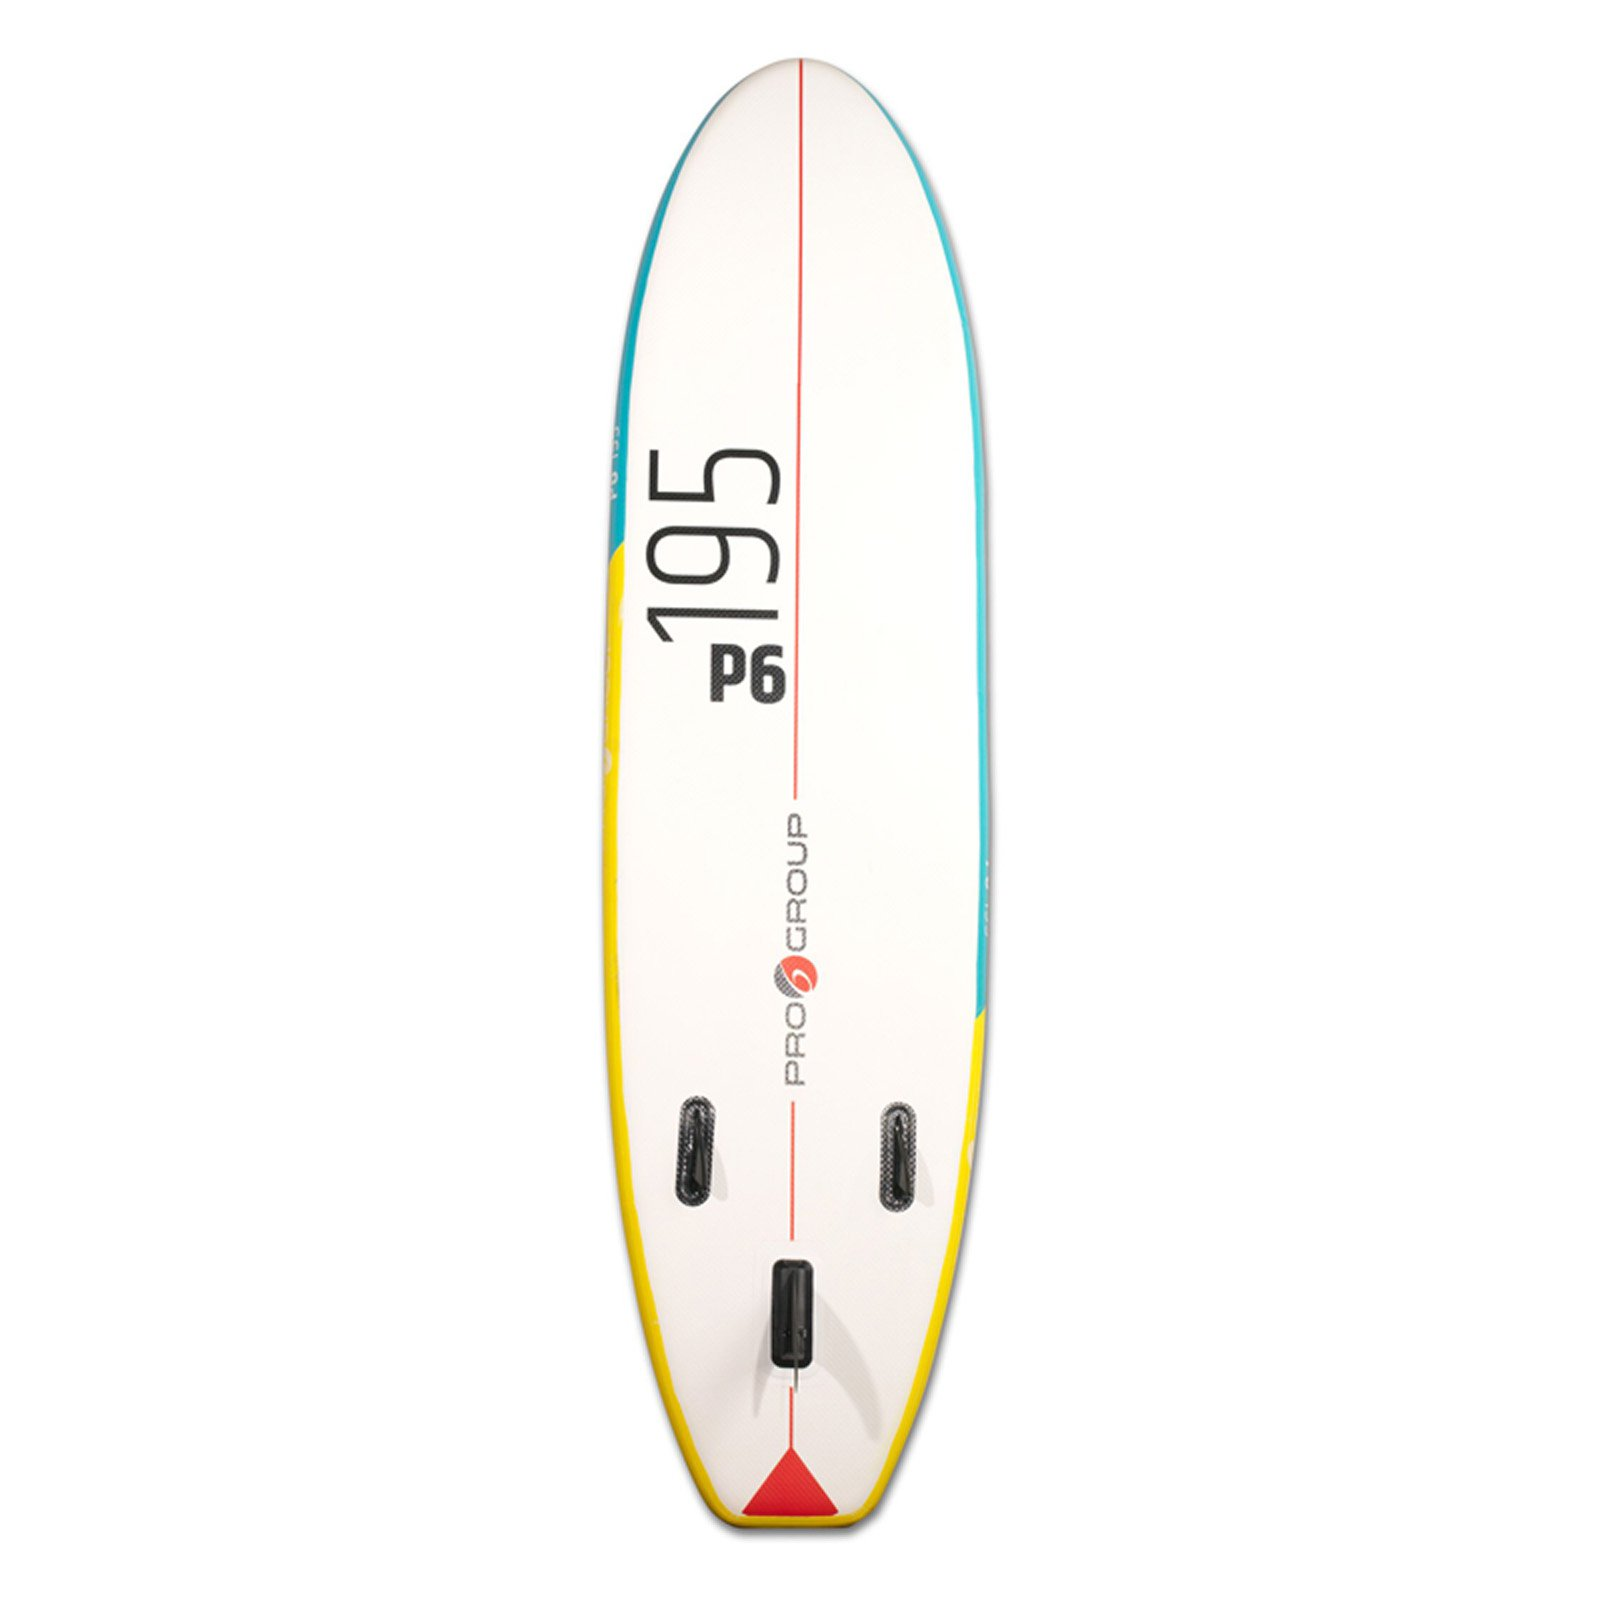 Pro 6 ISUP Inflatable Stand Up Paddle Board by Golden Designs